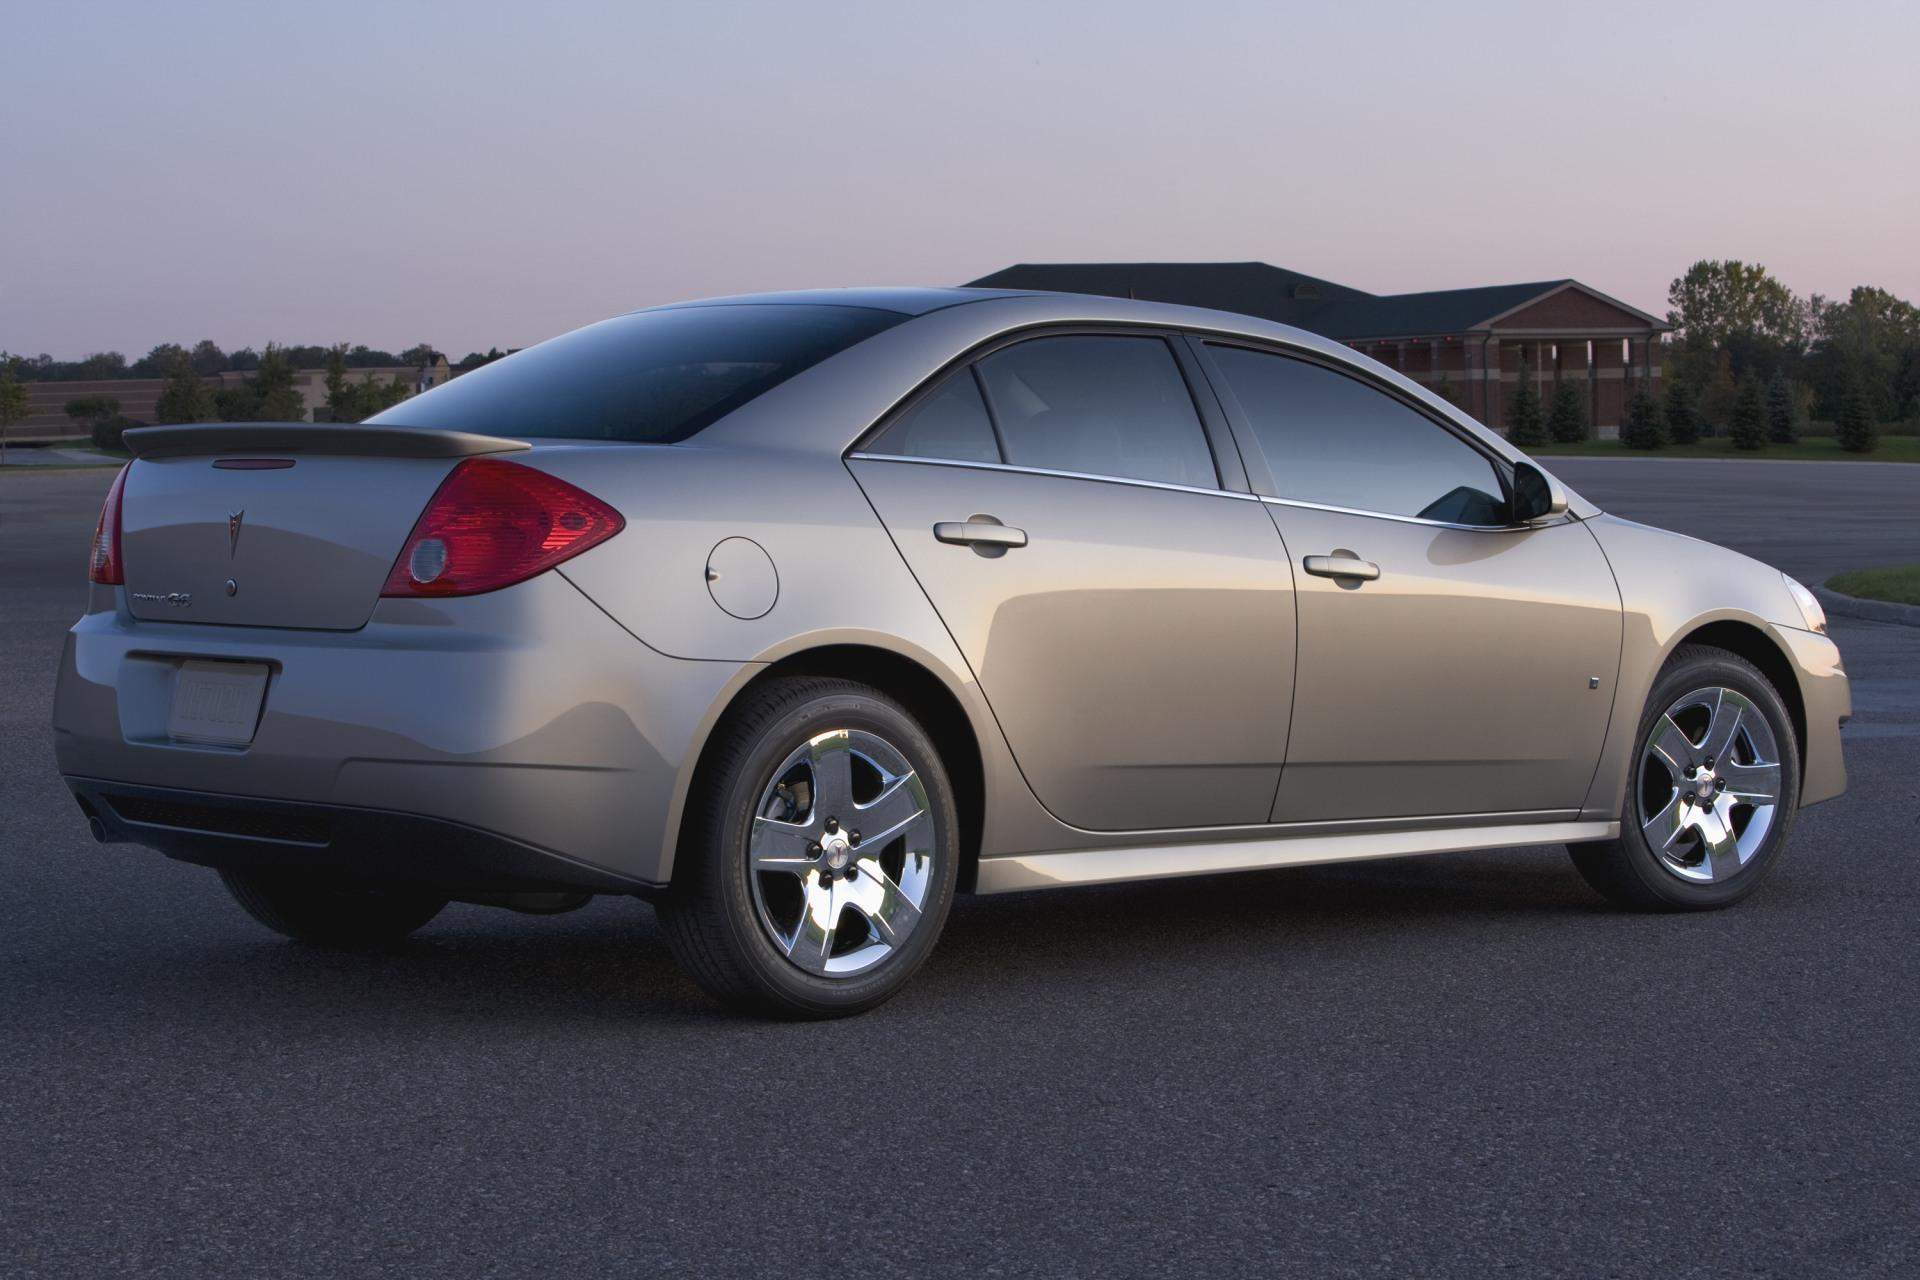 2009 pontiac g6 image. Black Bedroom Furniture Sets. Home Design Ideas